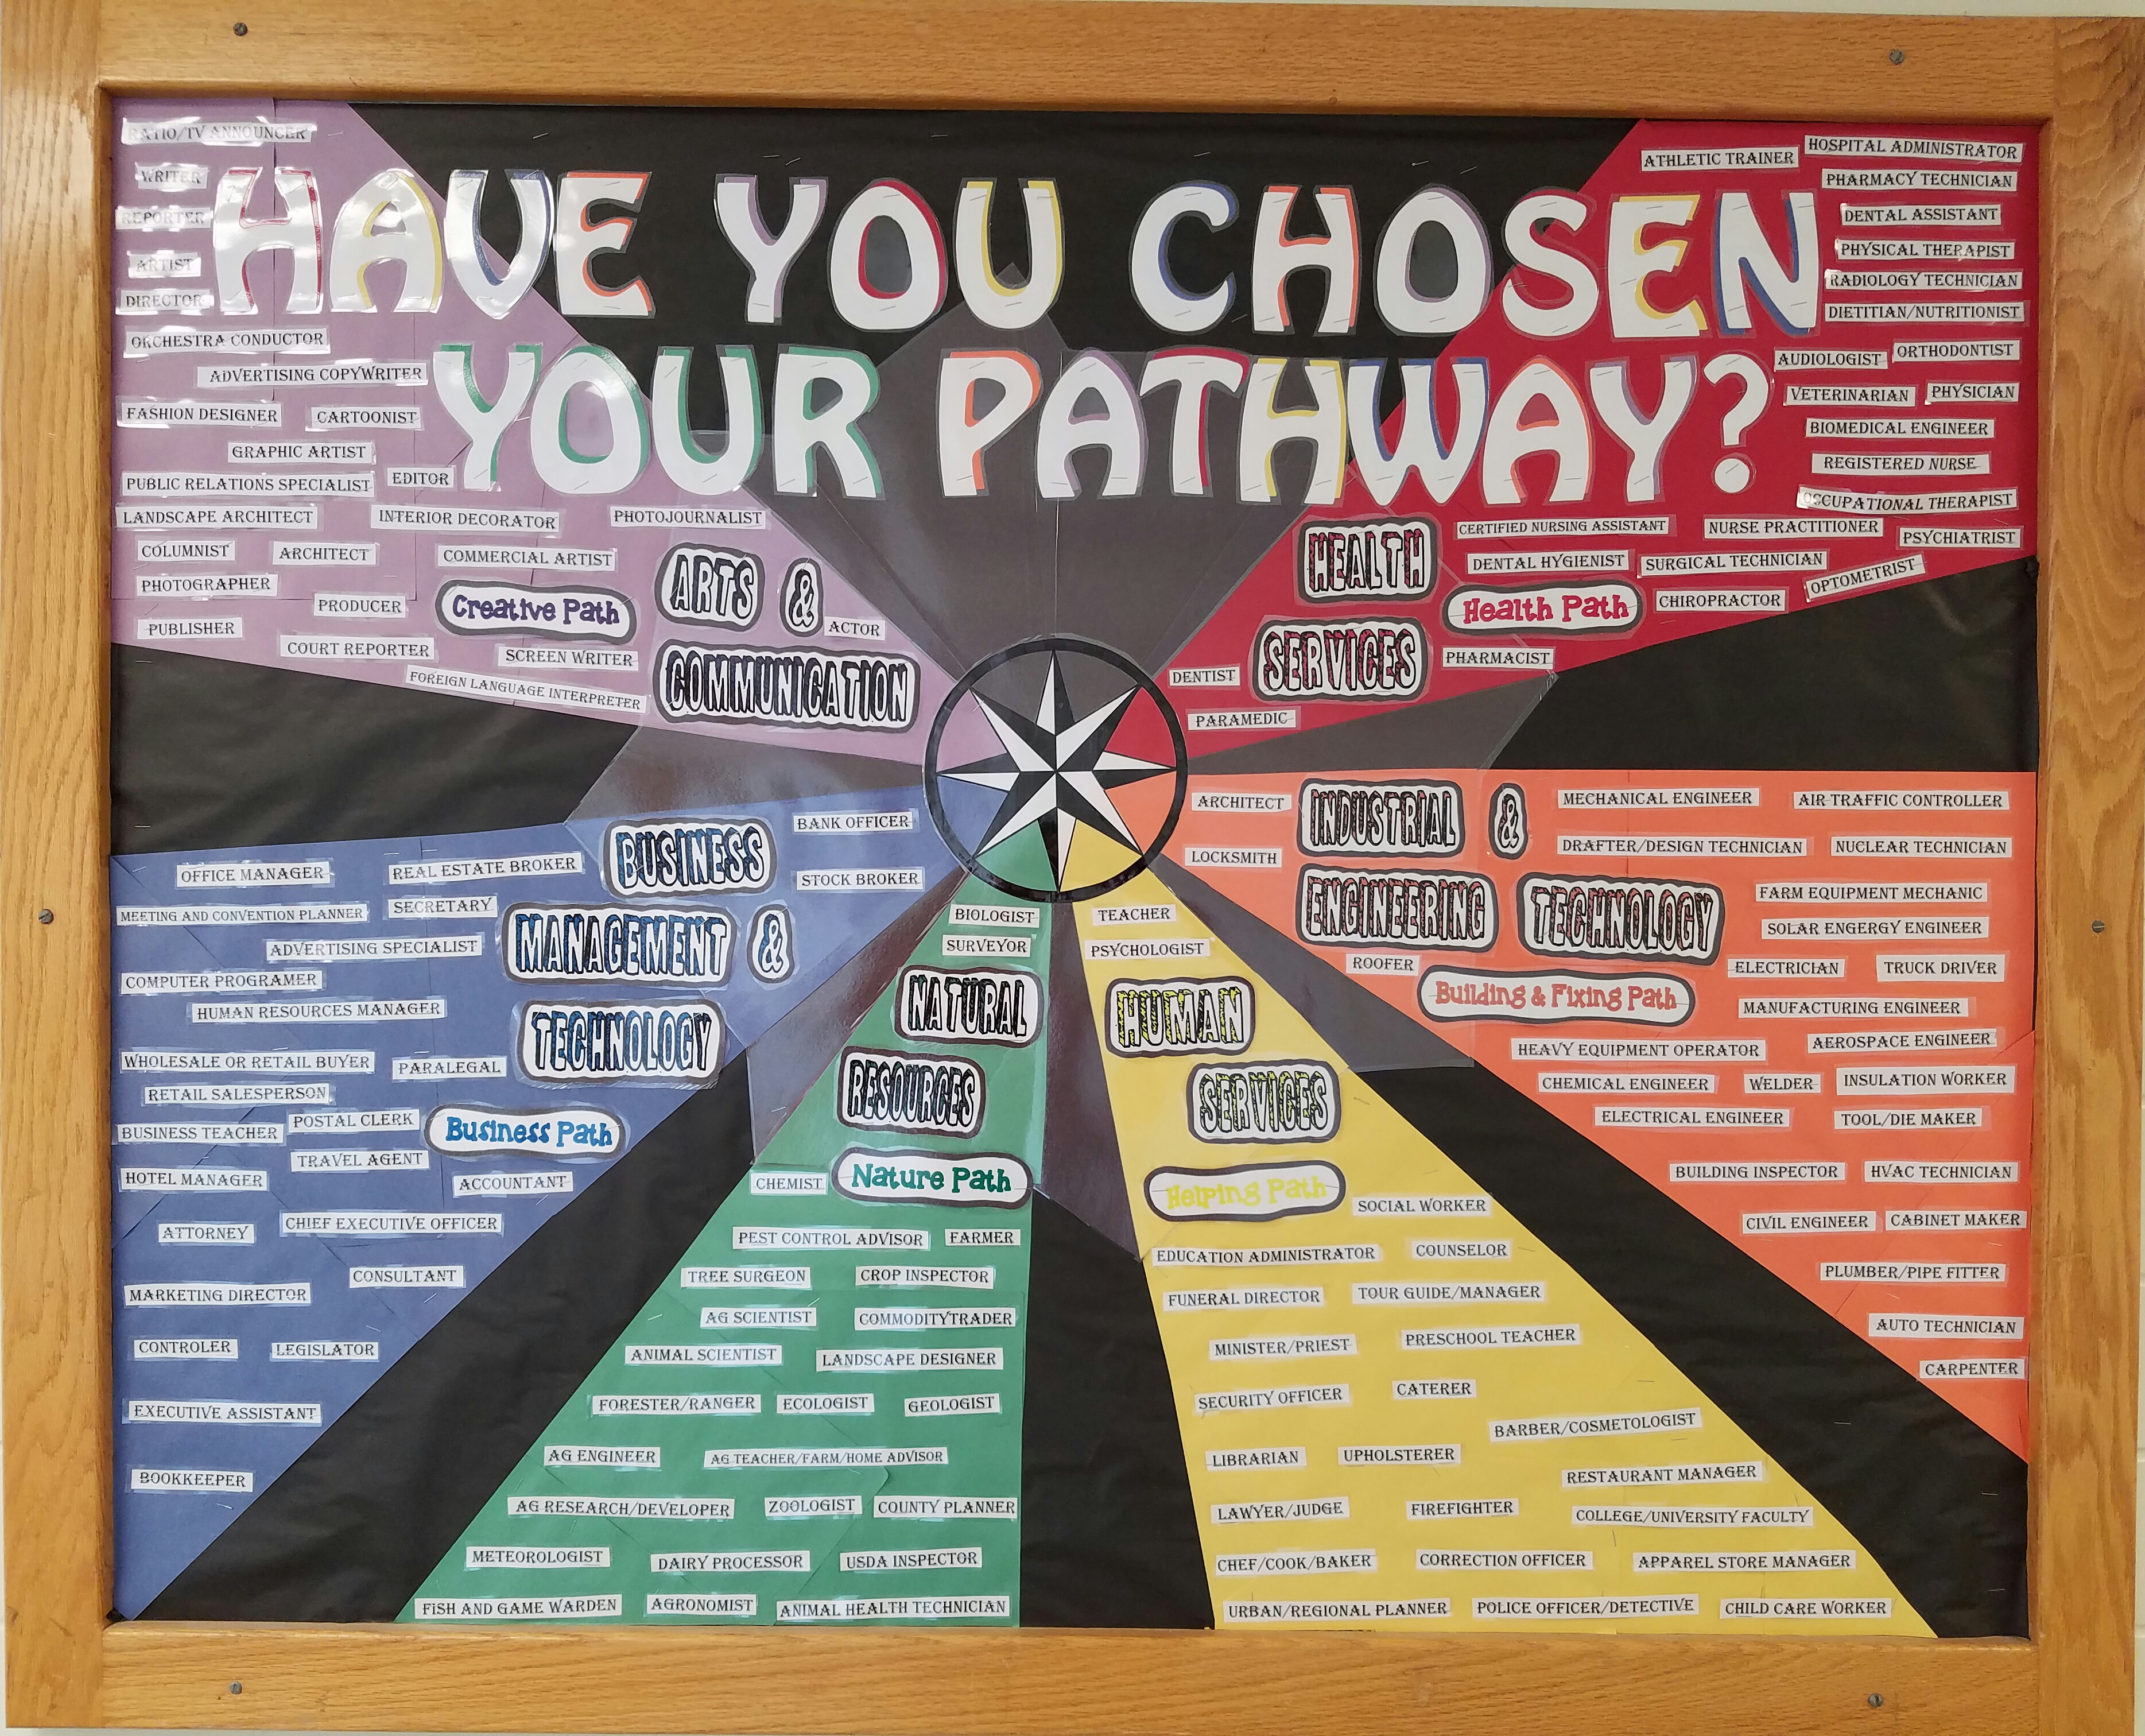 Have You Chosen Your Pathway.jpg